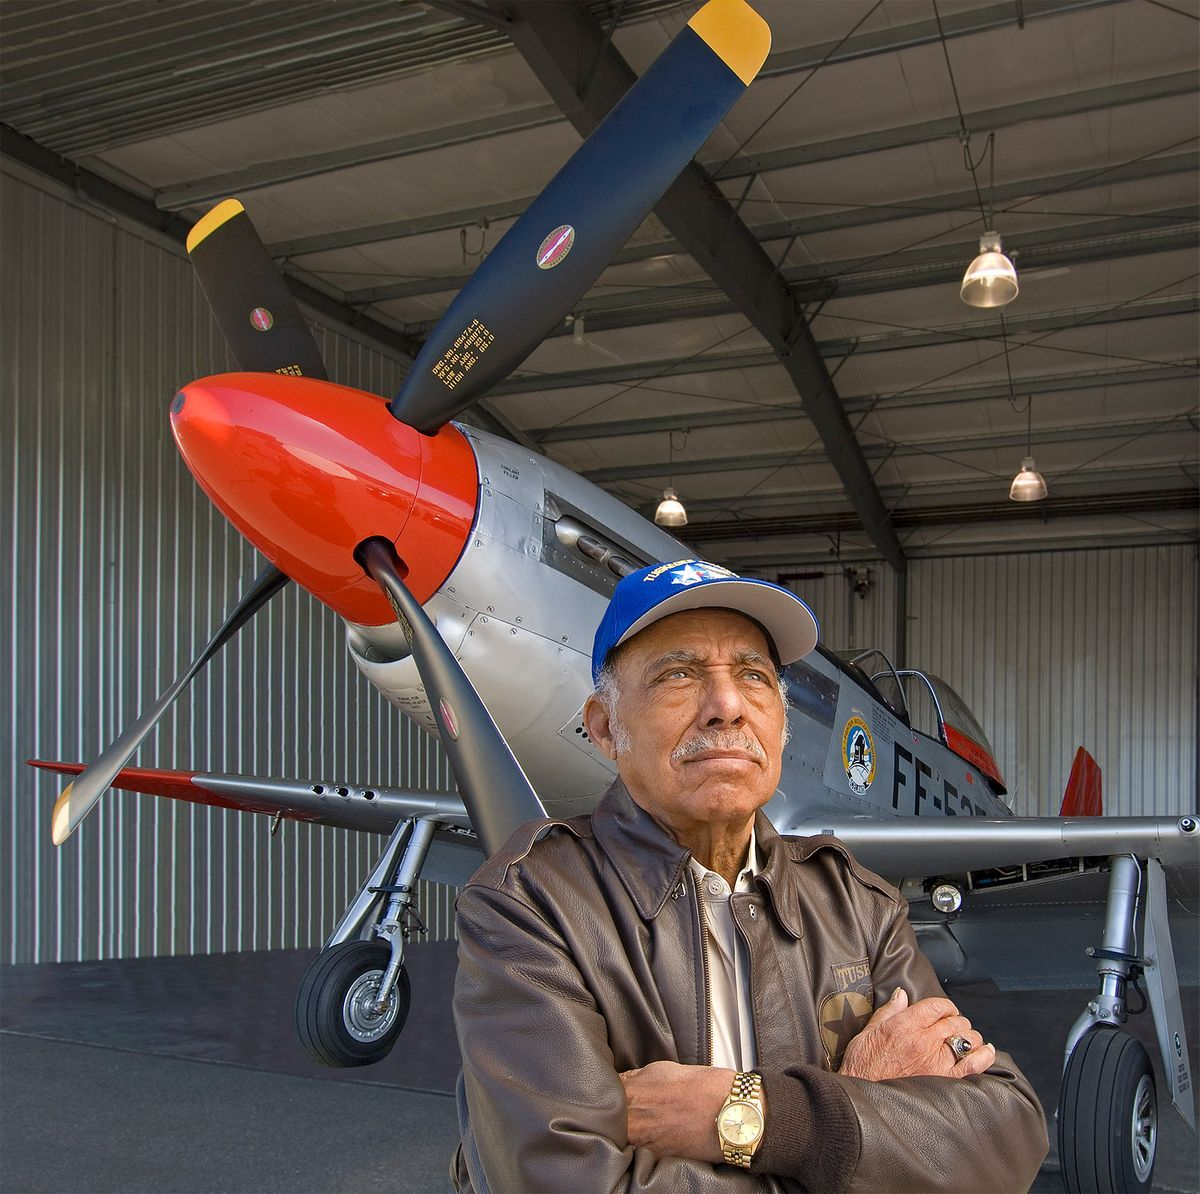 Col. William Holloman III, Tuskegee Airman